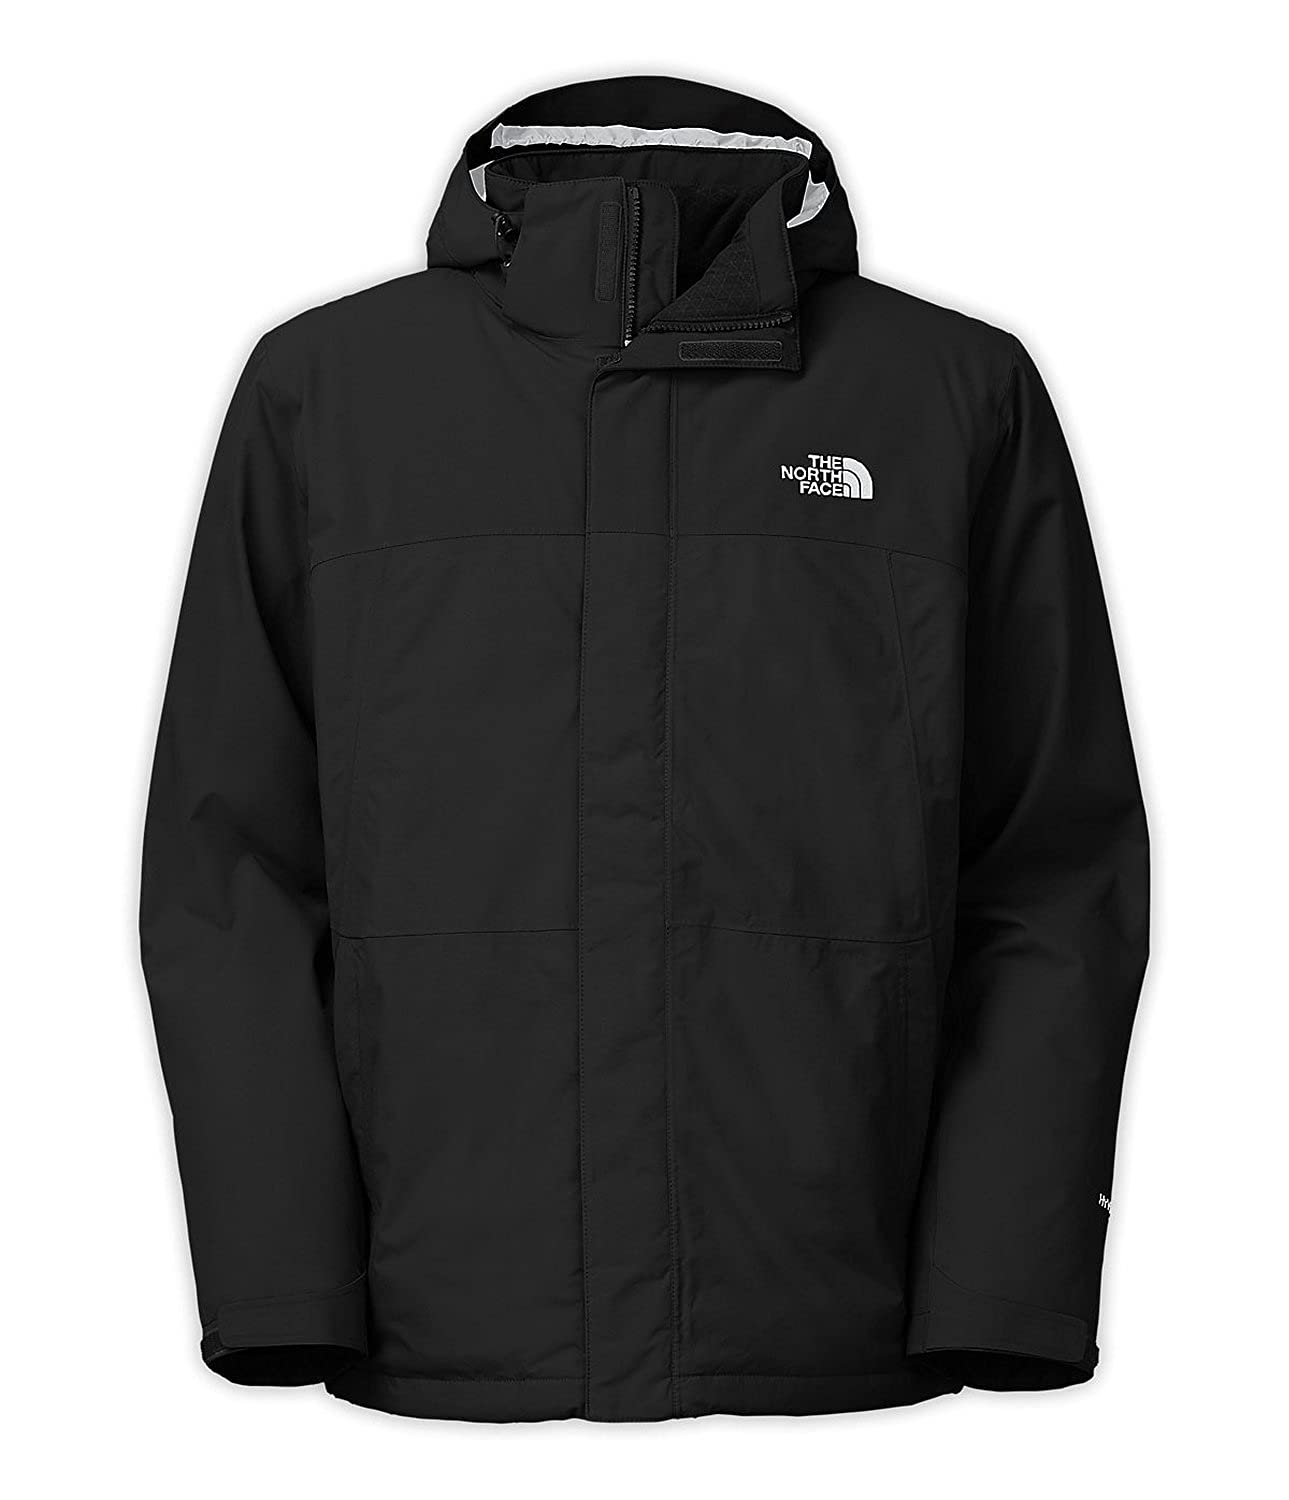 Amazon.com: Men's The North Face Inlux Insulated Jacket: Sports ...